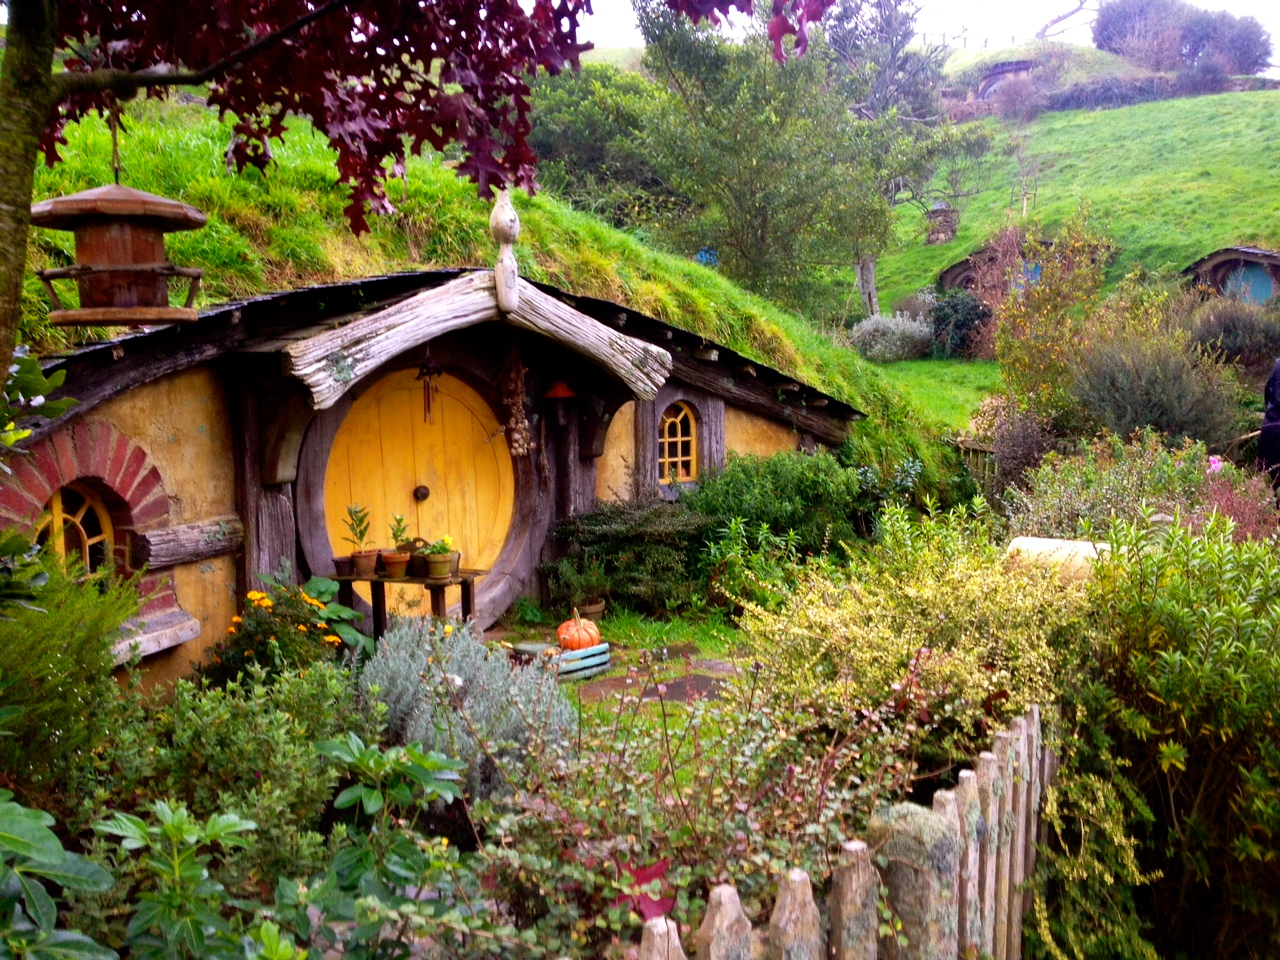 A short post about Hobbits – FindingMyWay